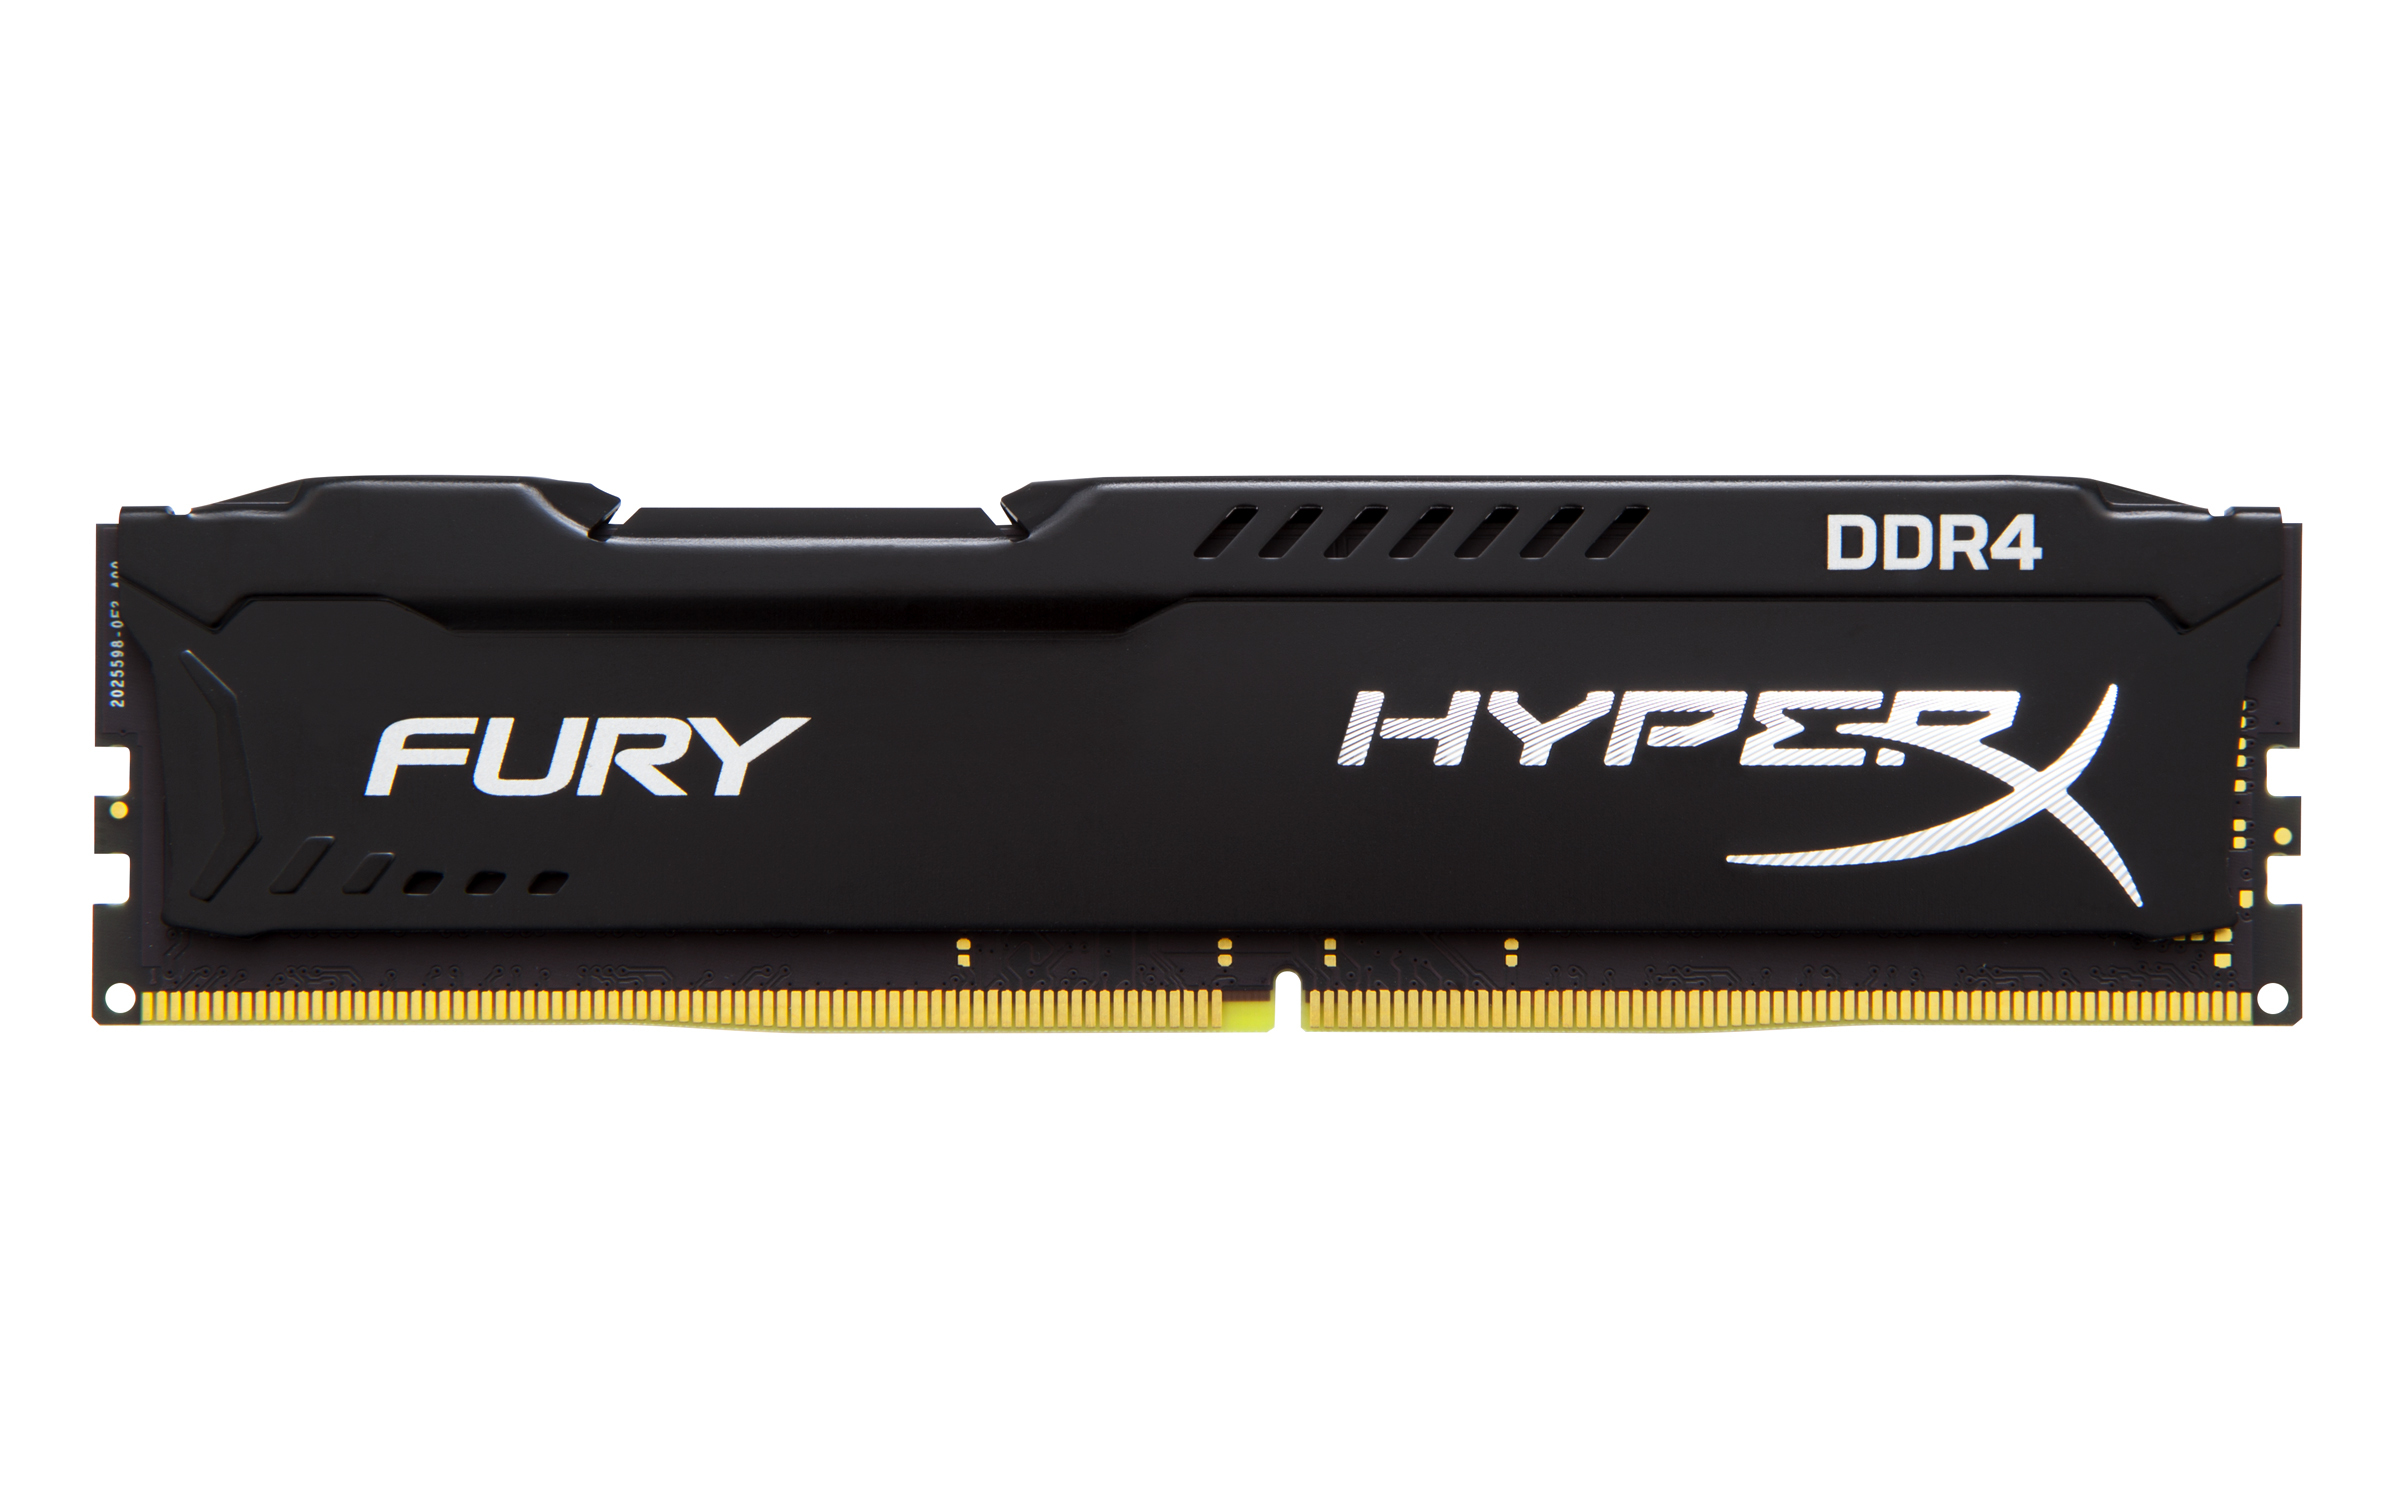 Ram Kingston 8GB 2666Mhz DDR4 CL15 DIMM Fury HyperX Black